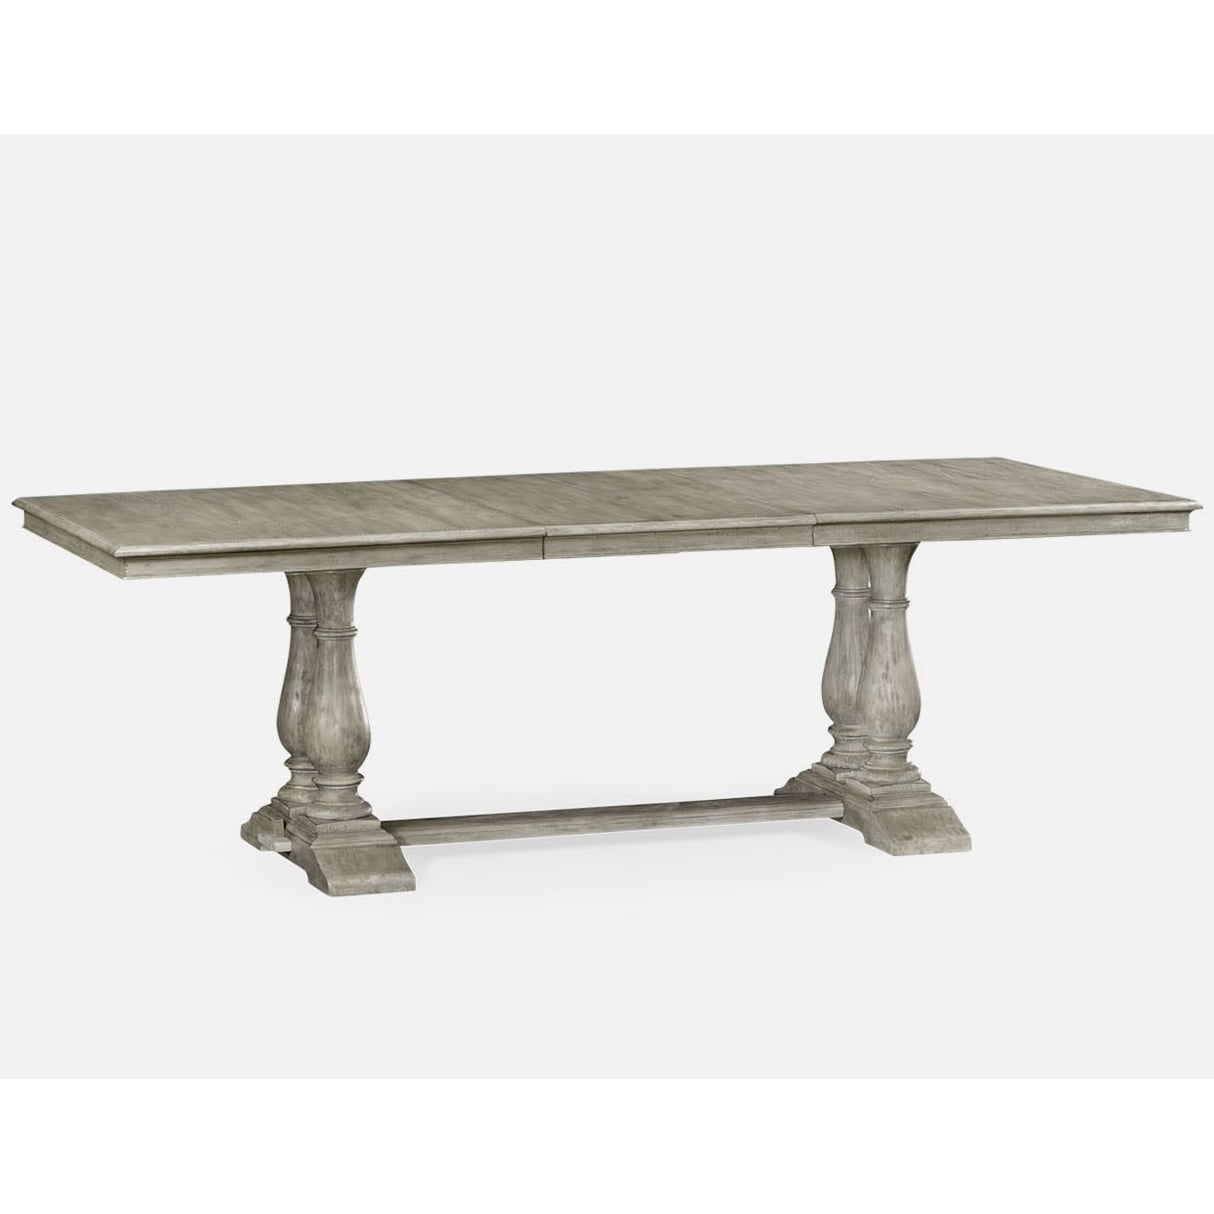 Dining Tables Rustic: Rustic Grey Rectangular Extending Dining Table